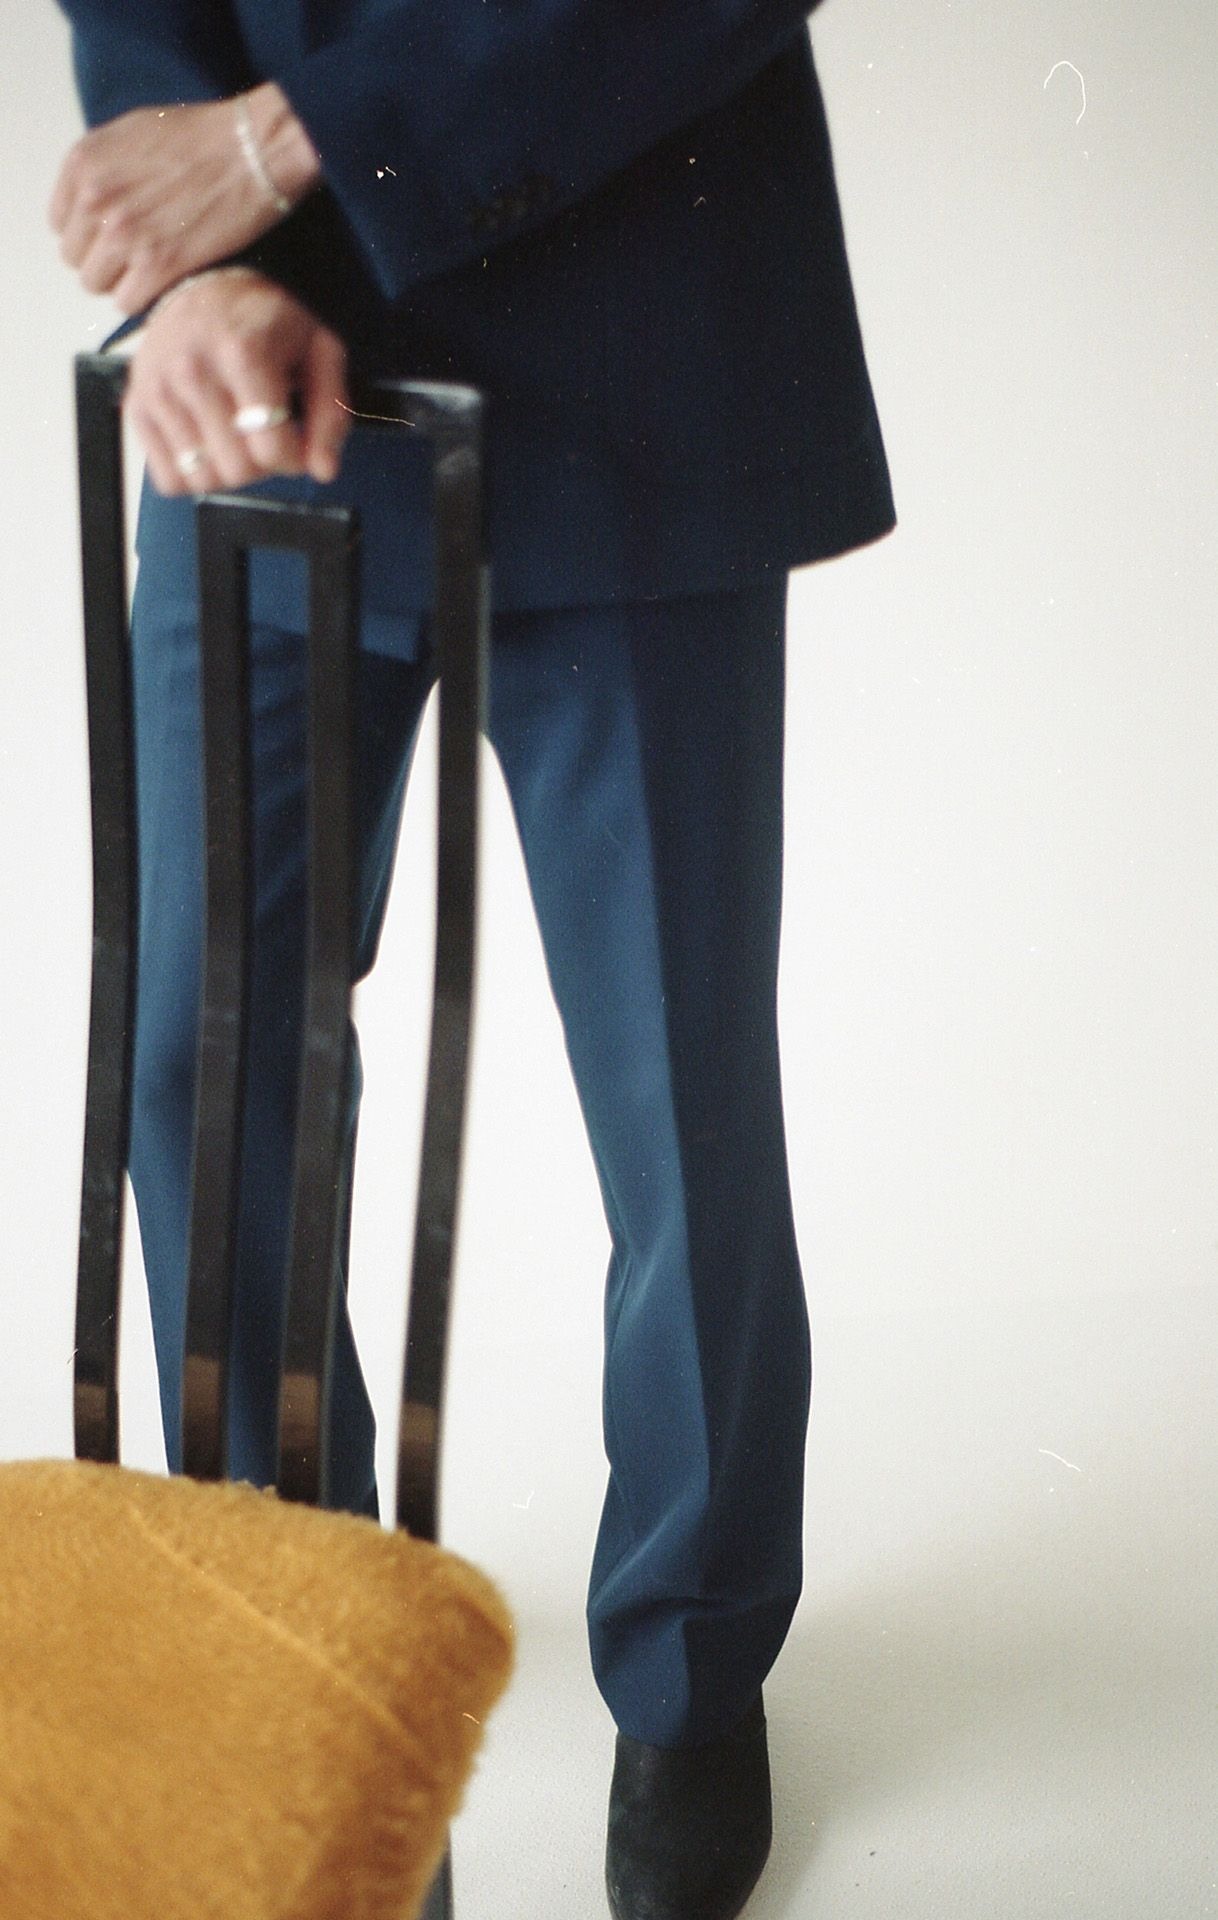 male model standing next to designer chair wearing dark blue suit jacket and pants with black heeled shoes for Collector's Cut by Hyperbureau with styling and artistic direction by Studio TB